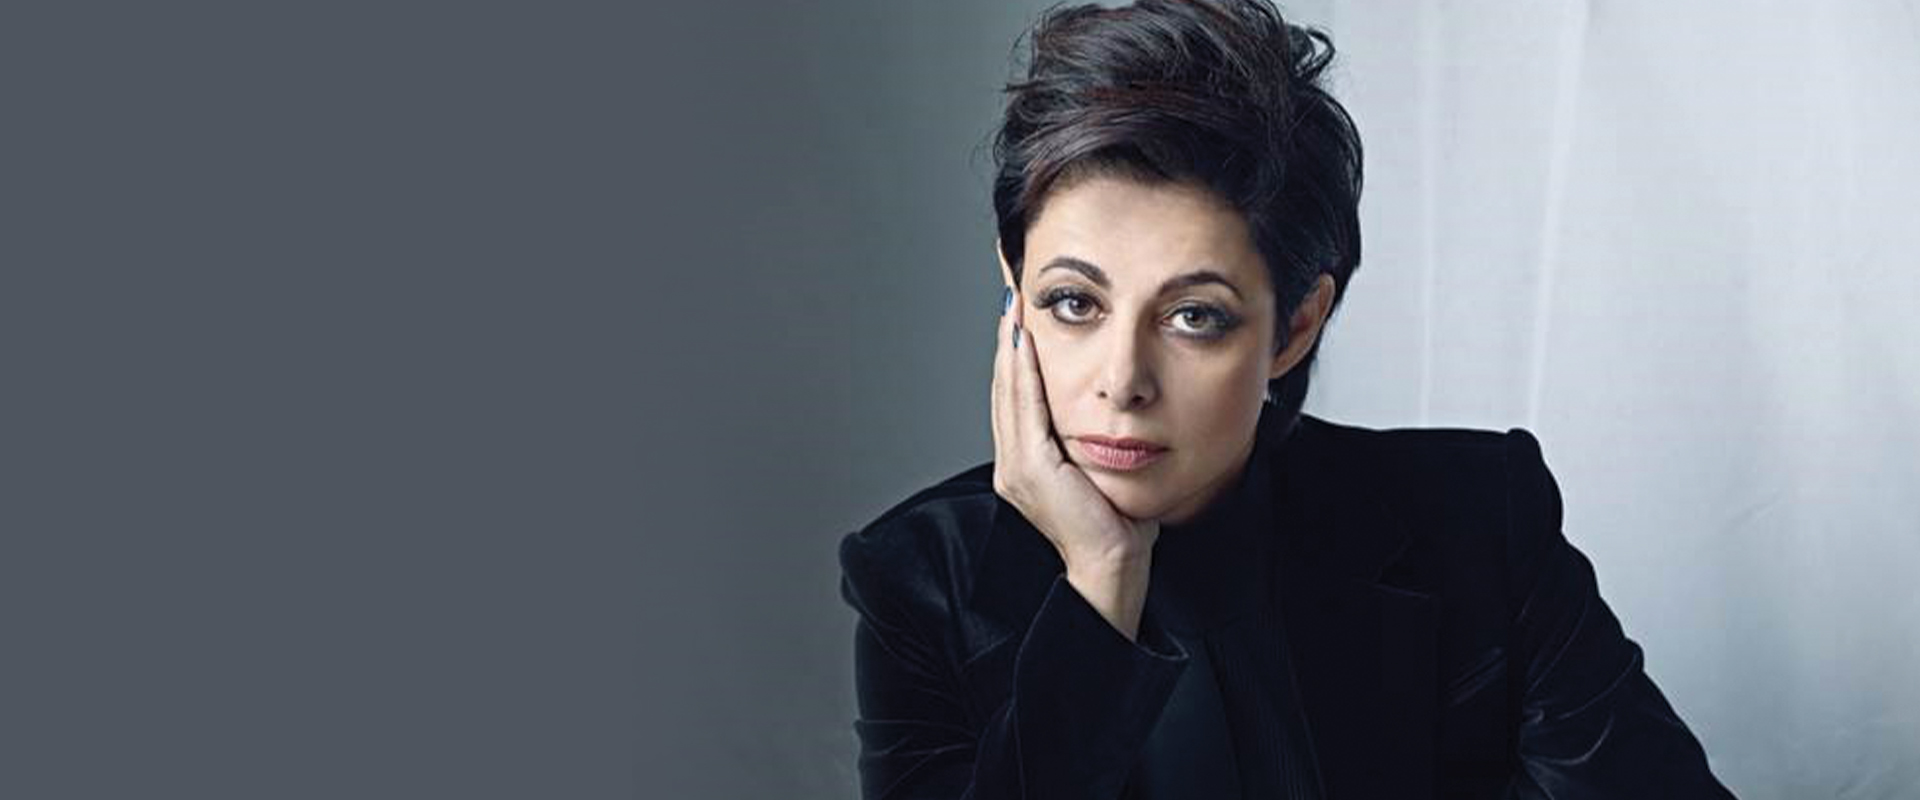 Photo of a woman, Marie Henein